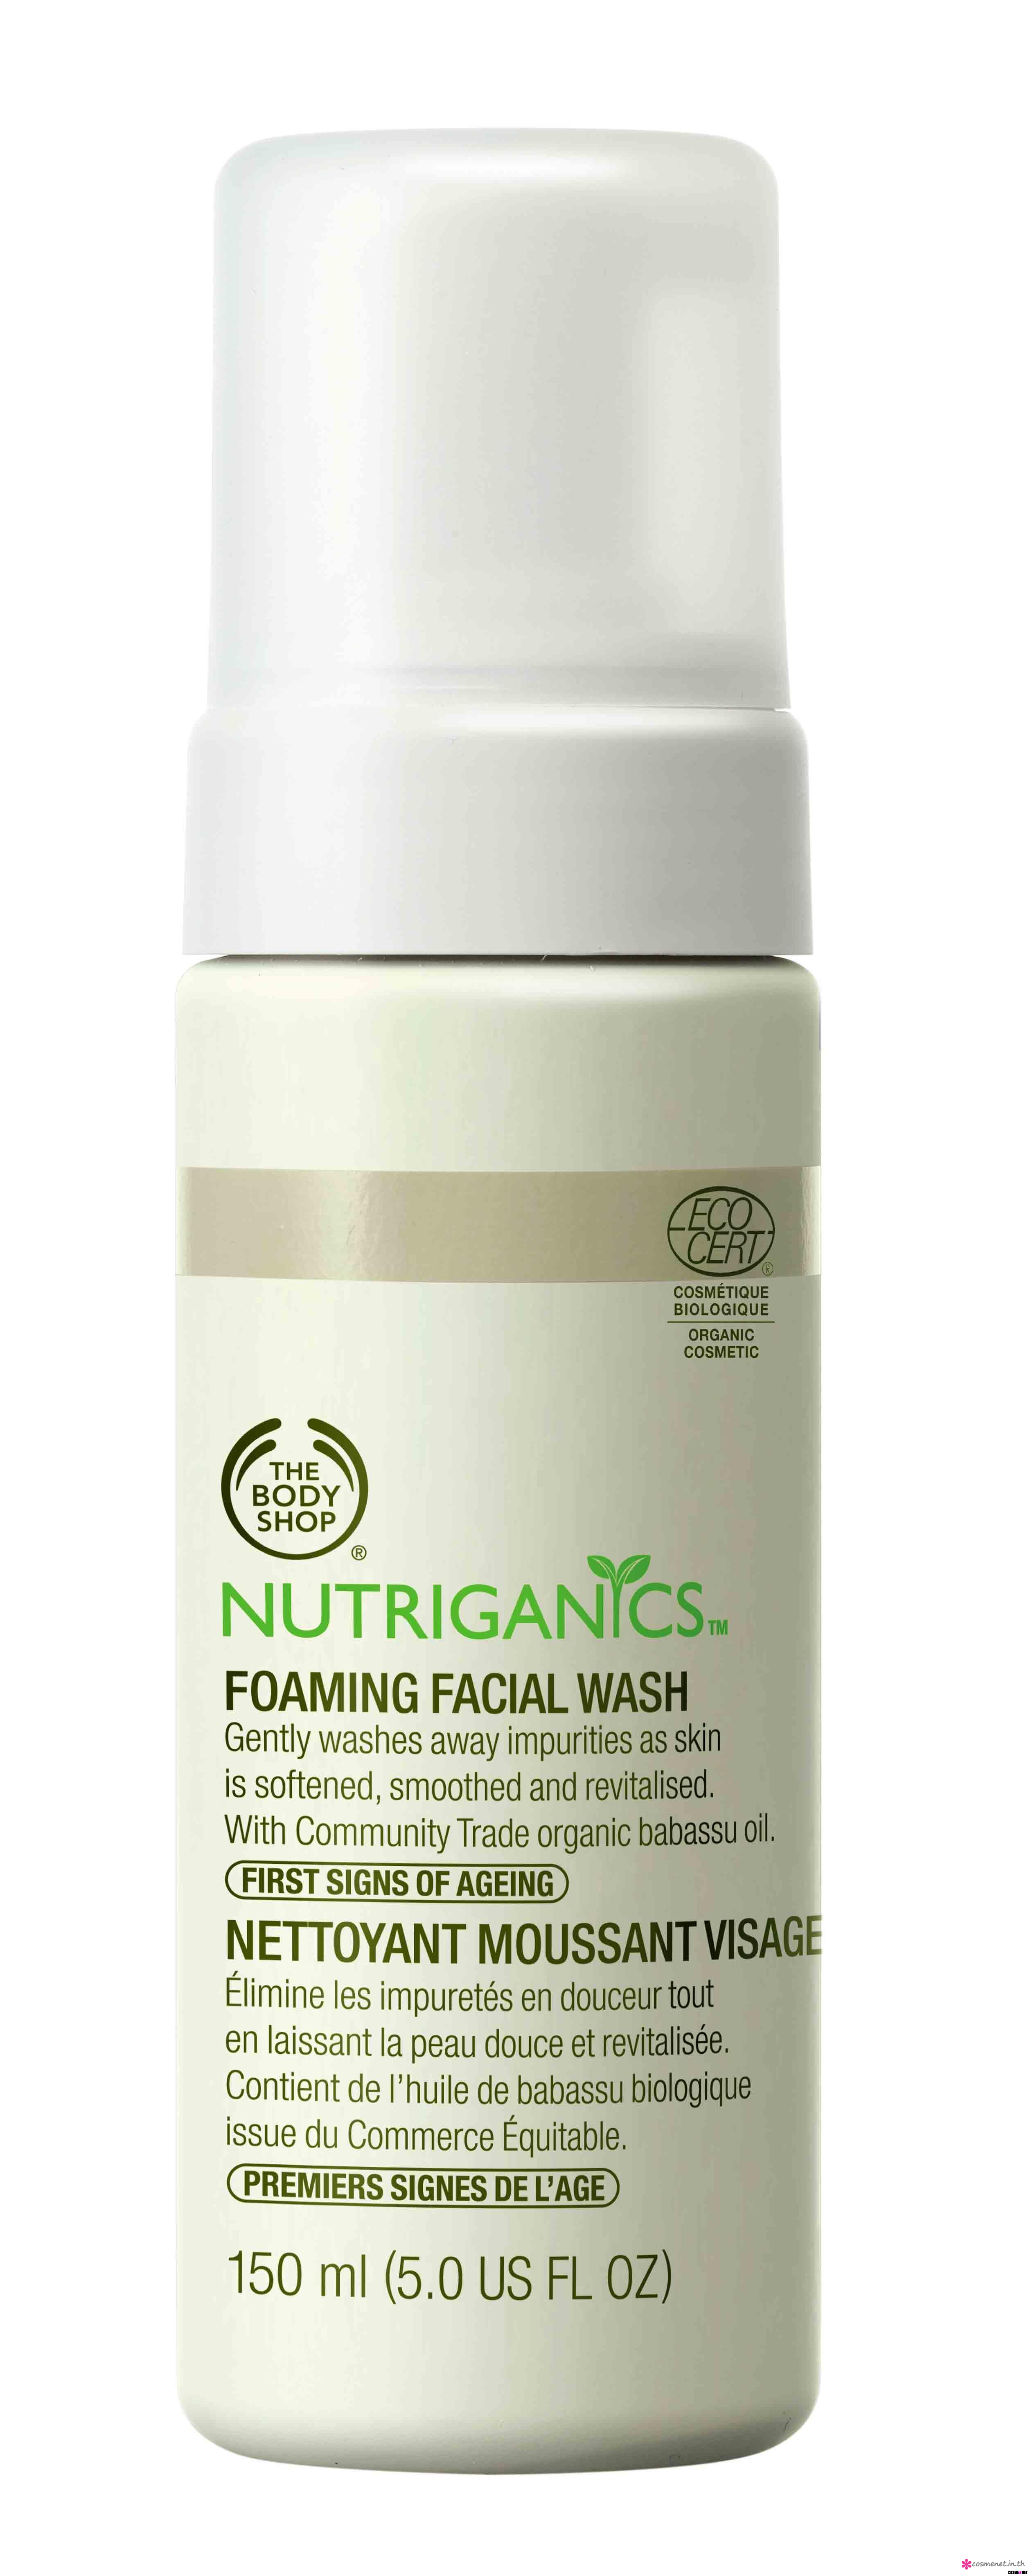 Nutriganics Foaming Facial Wash